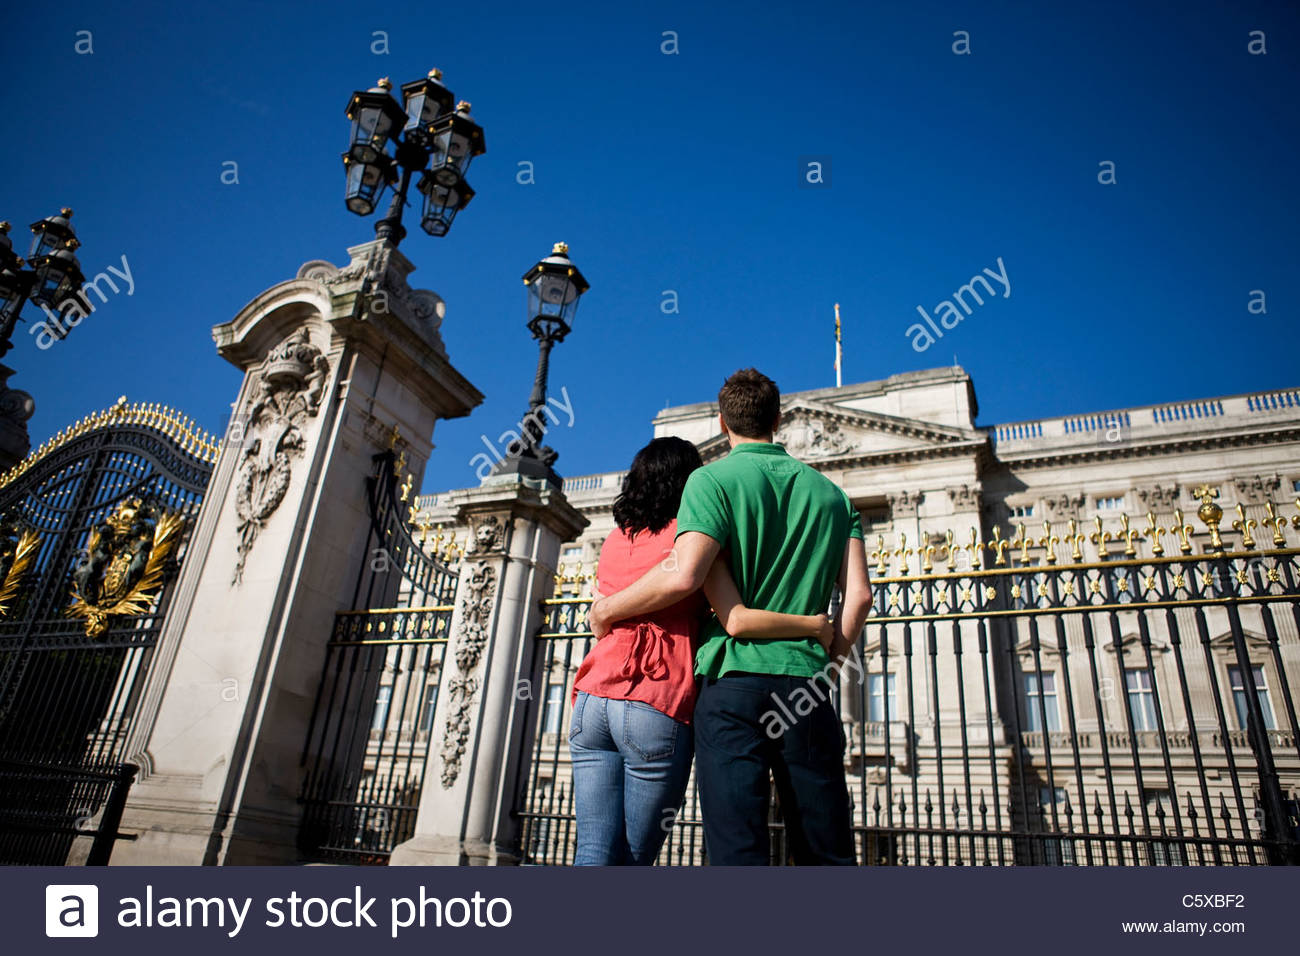 A young couple standing in front of Buckingham Palace, rear view - Stock Image